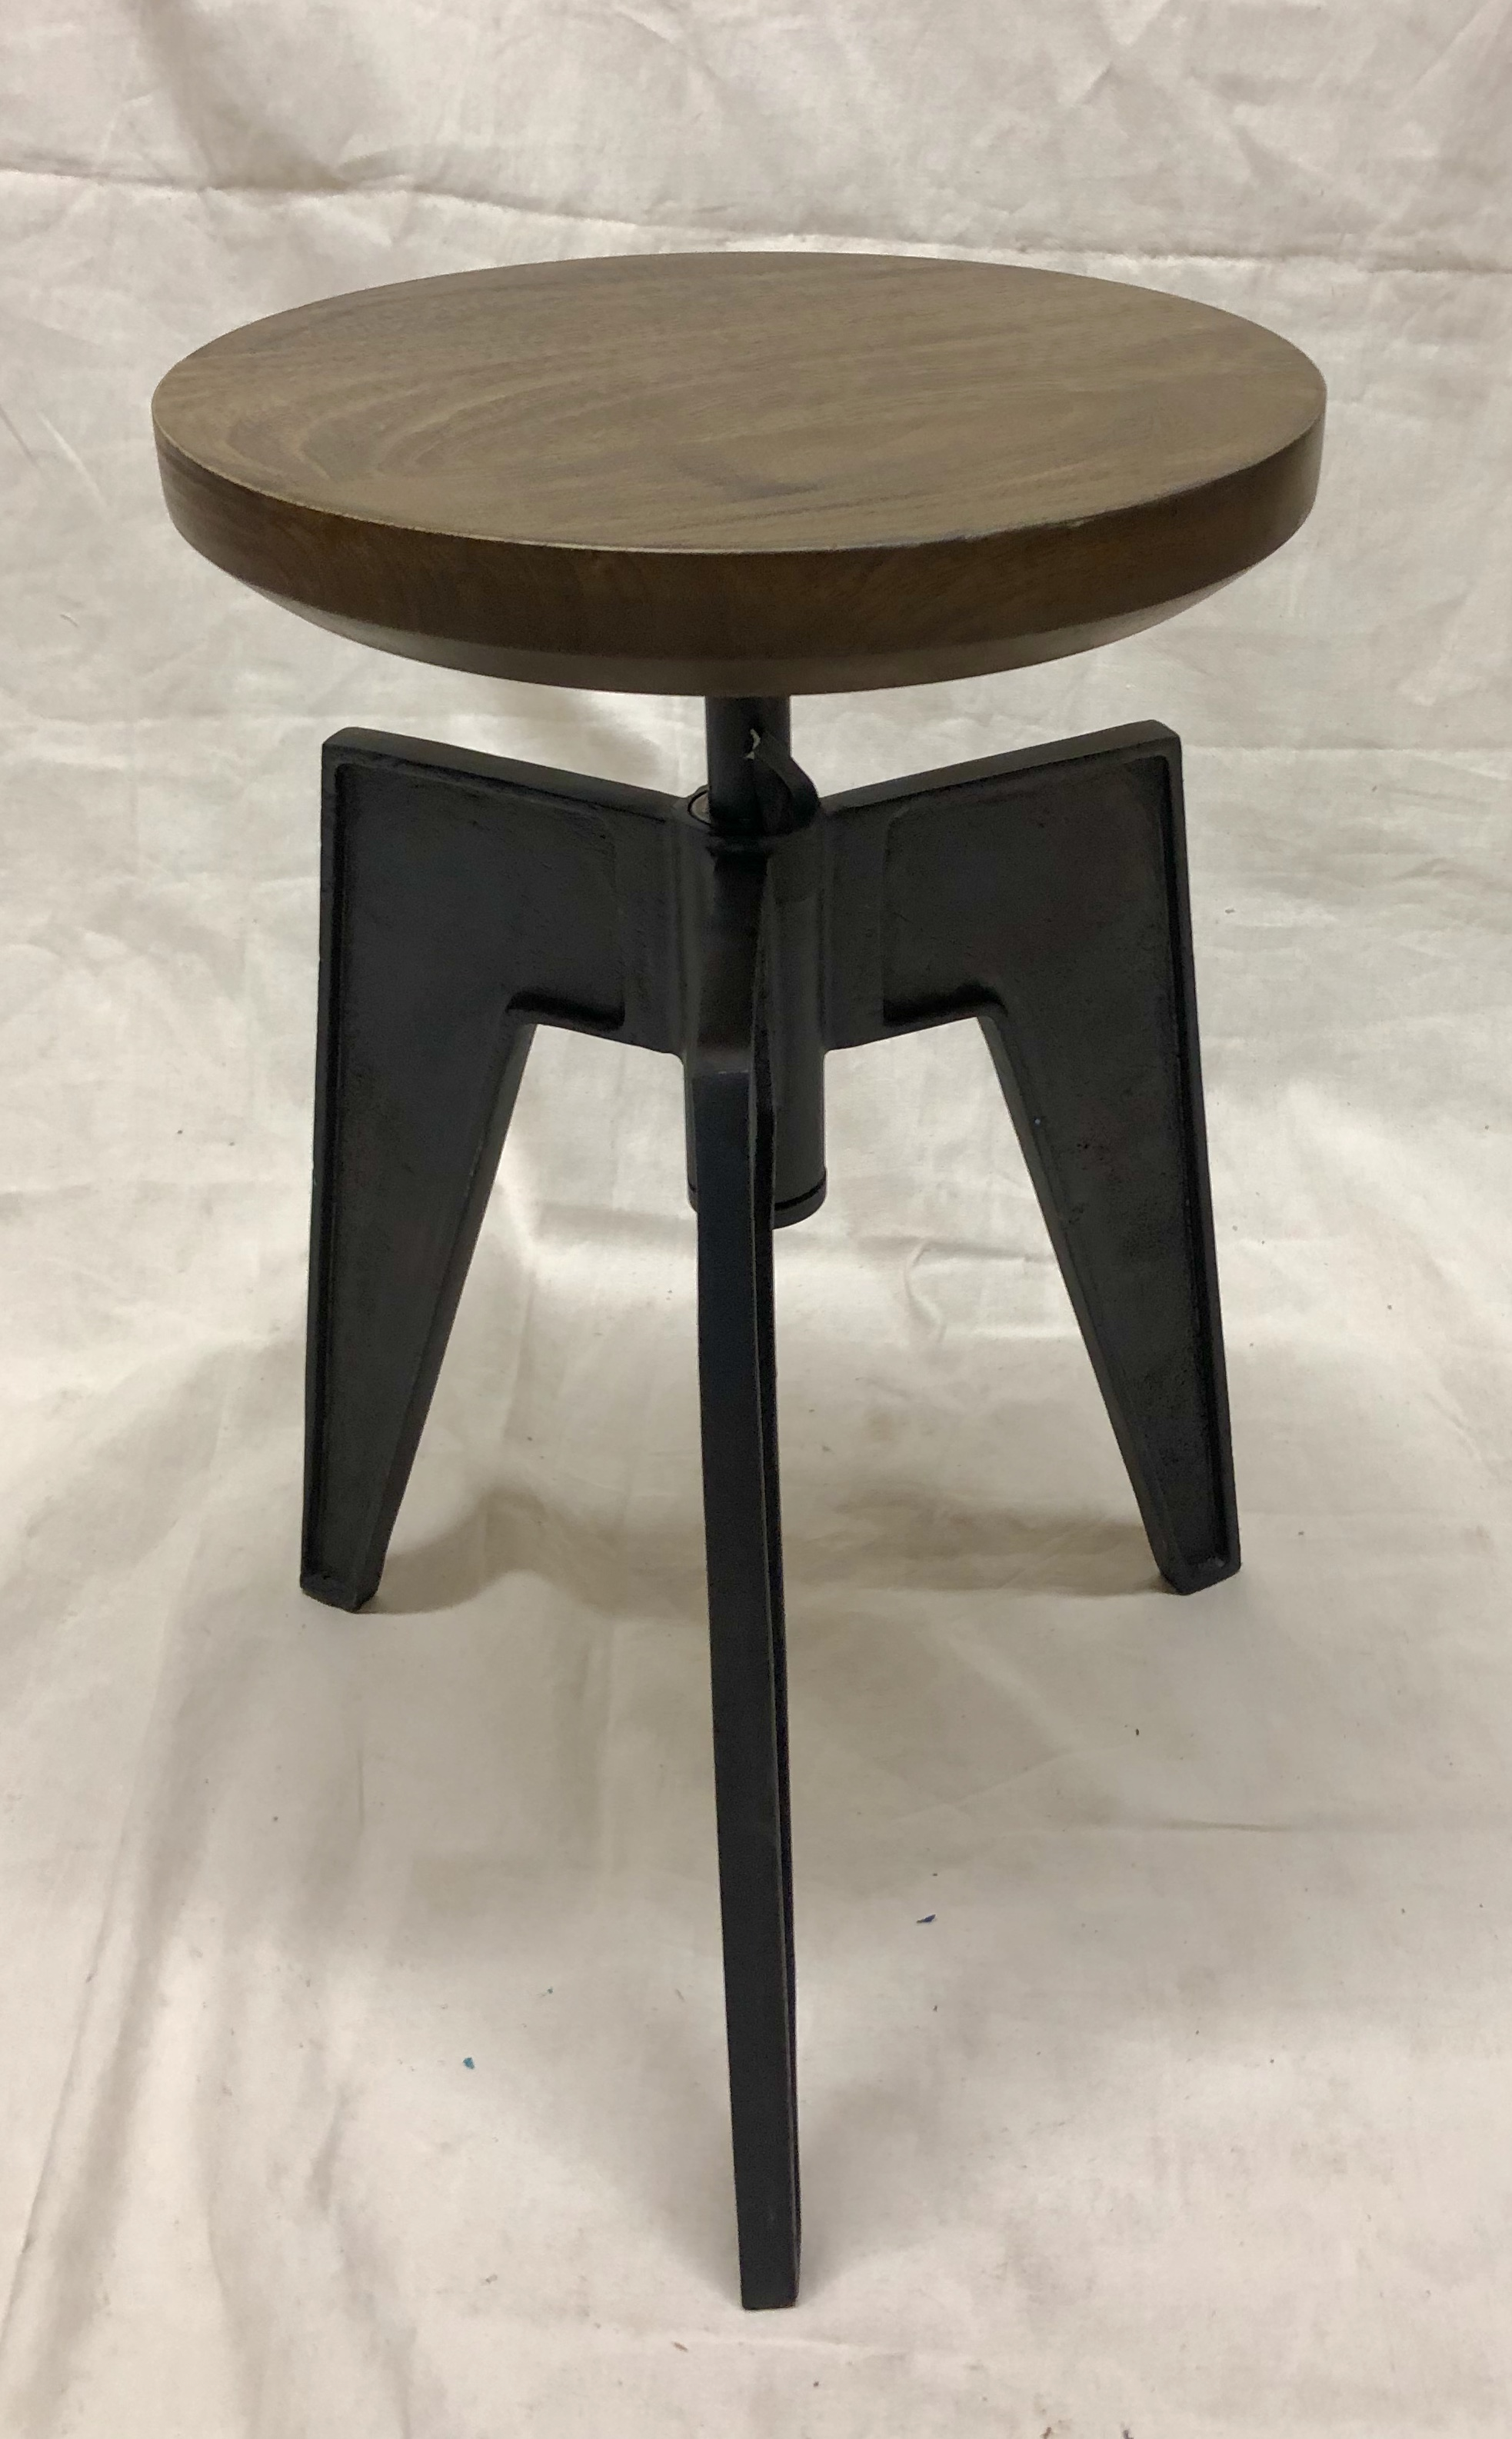 Steelwood Adjustable Stool - $35